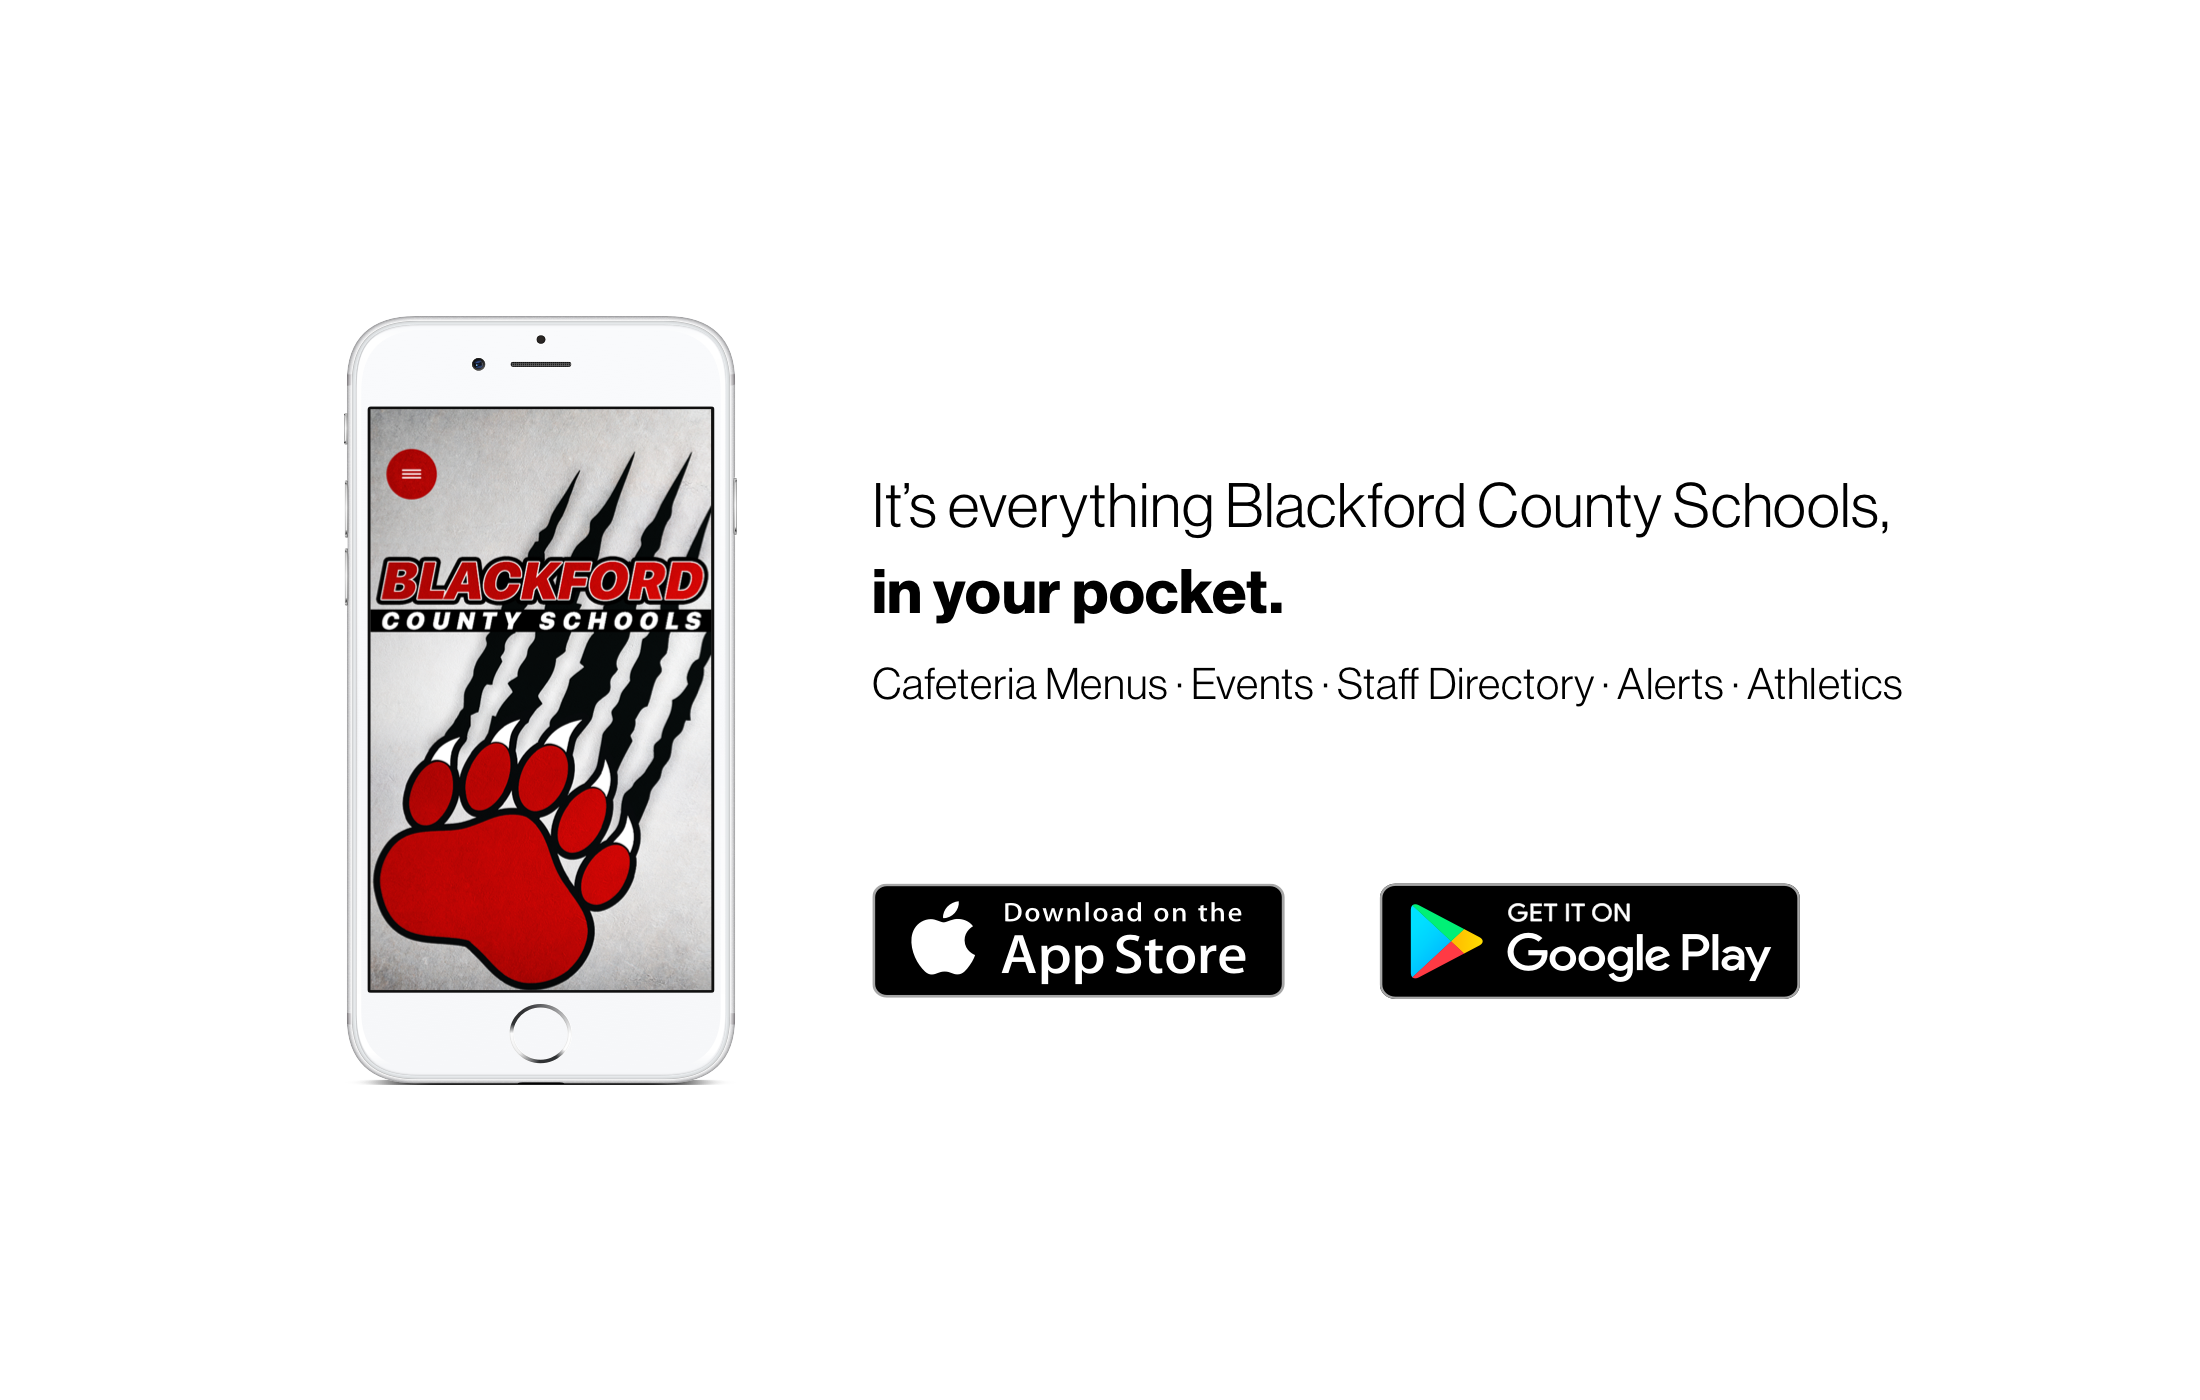 Introducing the brand new app for Blackford County Schools!